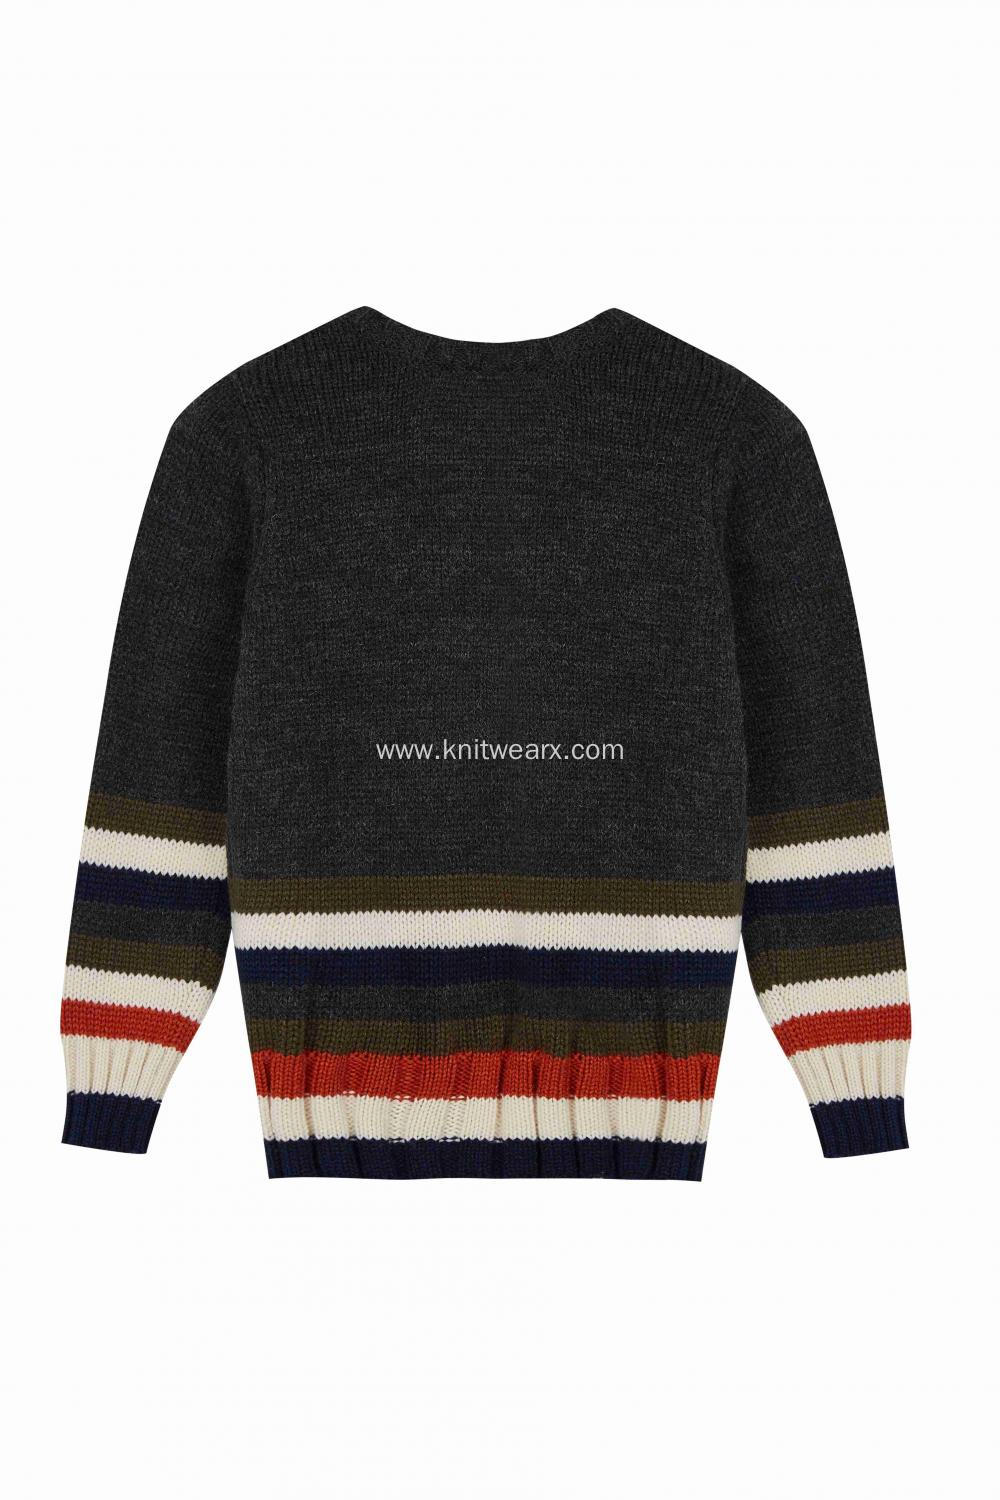 Boy's Knitted Stripe Bottom Crew Neck Pullover